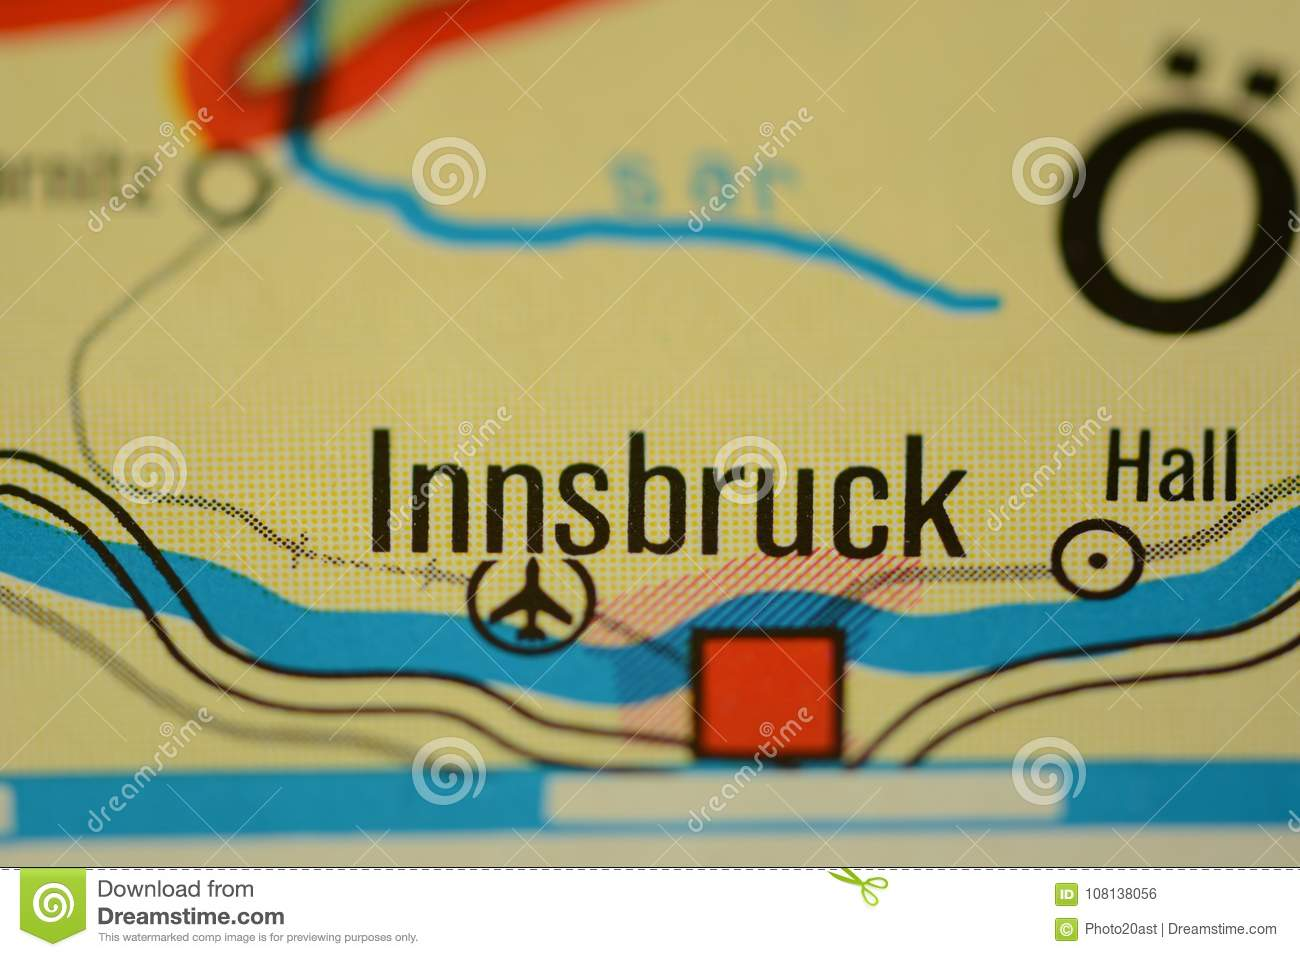 The City Name INNSBRUCK On The Map Stock Photo - Image of ... Innsbruck Austria Map on pinkafeld austria map, munich germany map, germany and austria map, wiener neustadt austria map, munich austria map, austria world map, vienna map, italy germany austria map, zell am see austria map, stubai austria map, austria province map, encarnacion paraguay on a map, alps map, mariazell austria map, eisenstadt austria map, zurich austria map, mittenwald map, strasbourg austria map, salzburg austria map, hallstatt austria map,